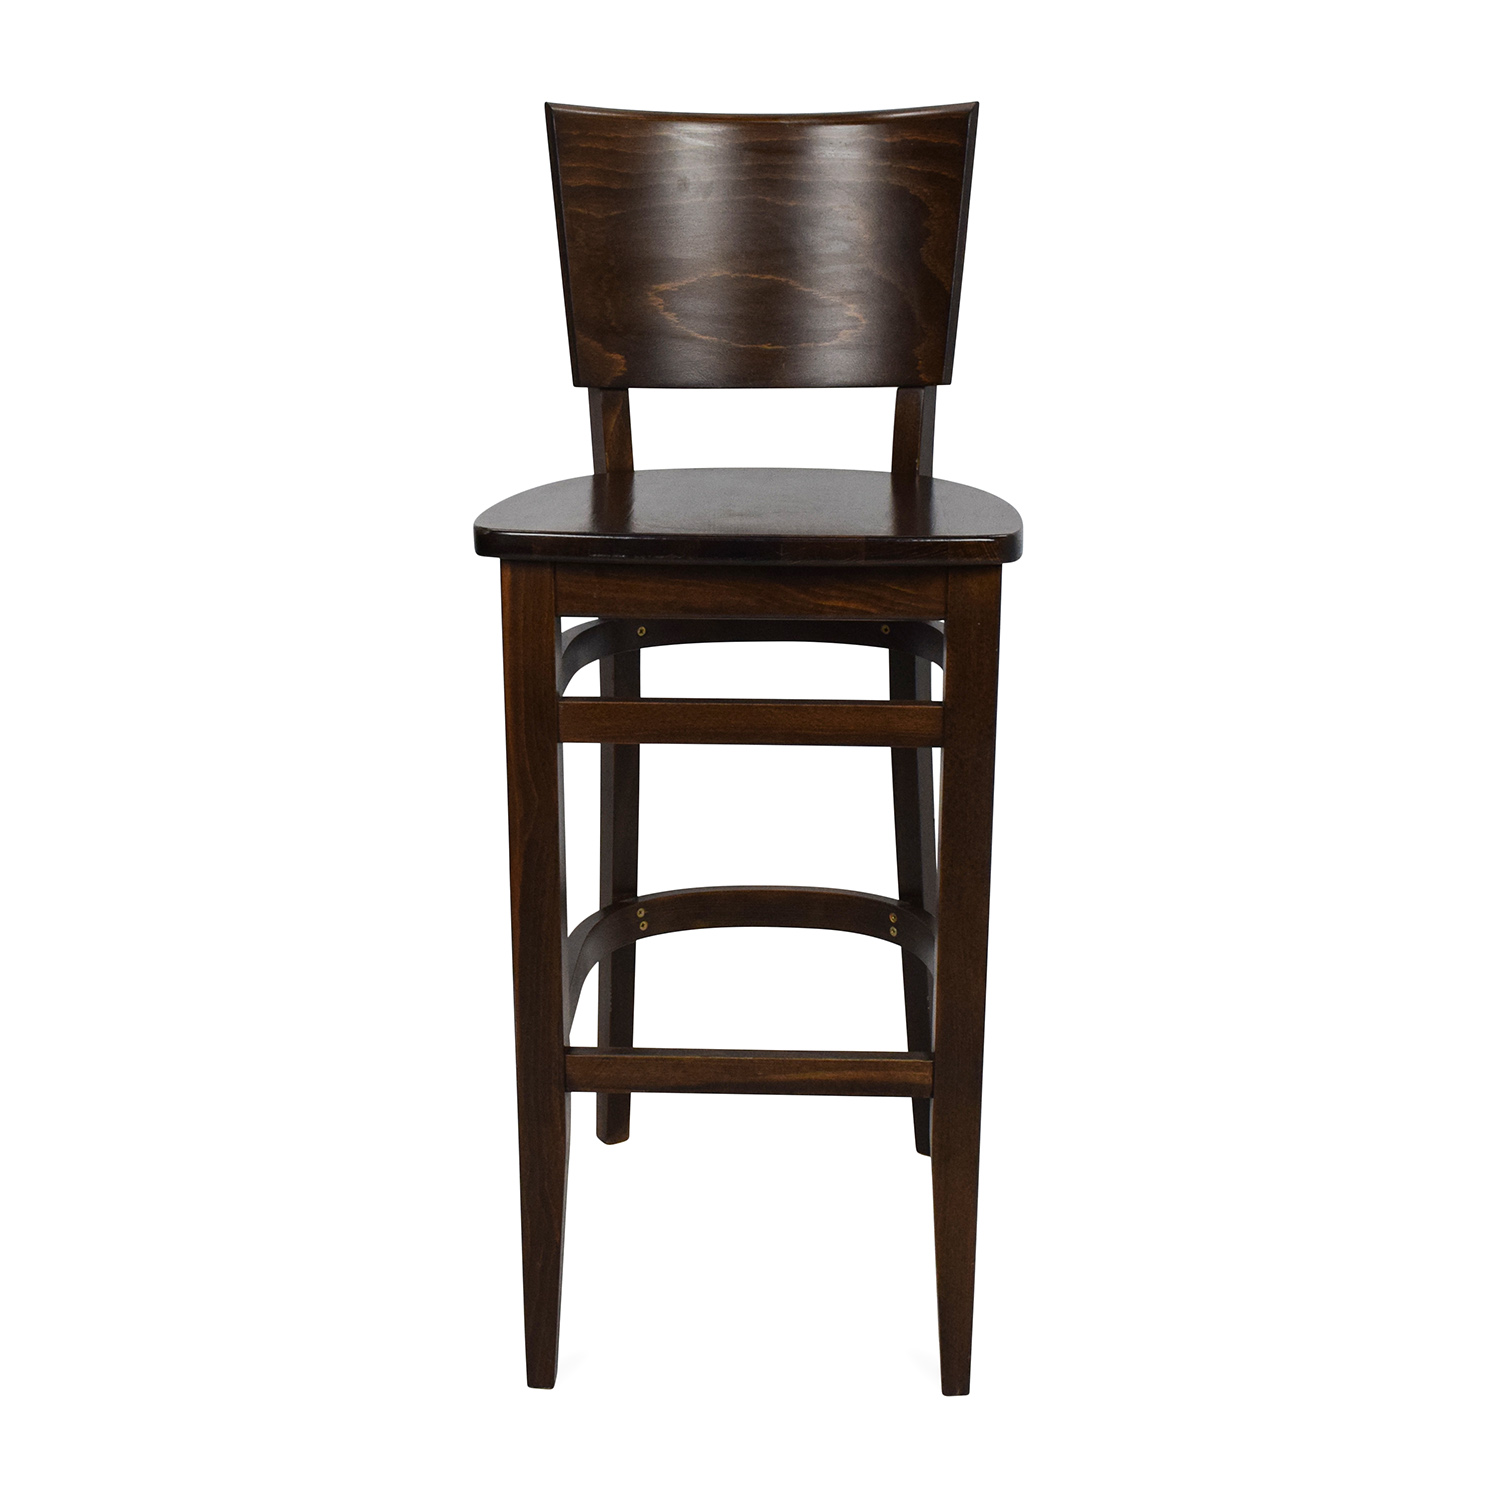 buy Design Within Reach Kyoto Bar Stool Design Within Reach (DWR)